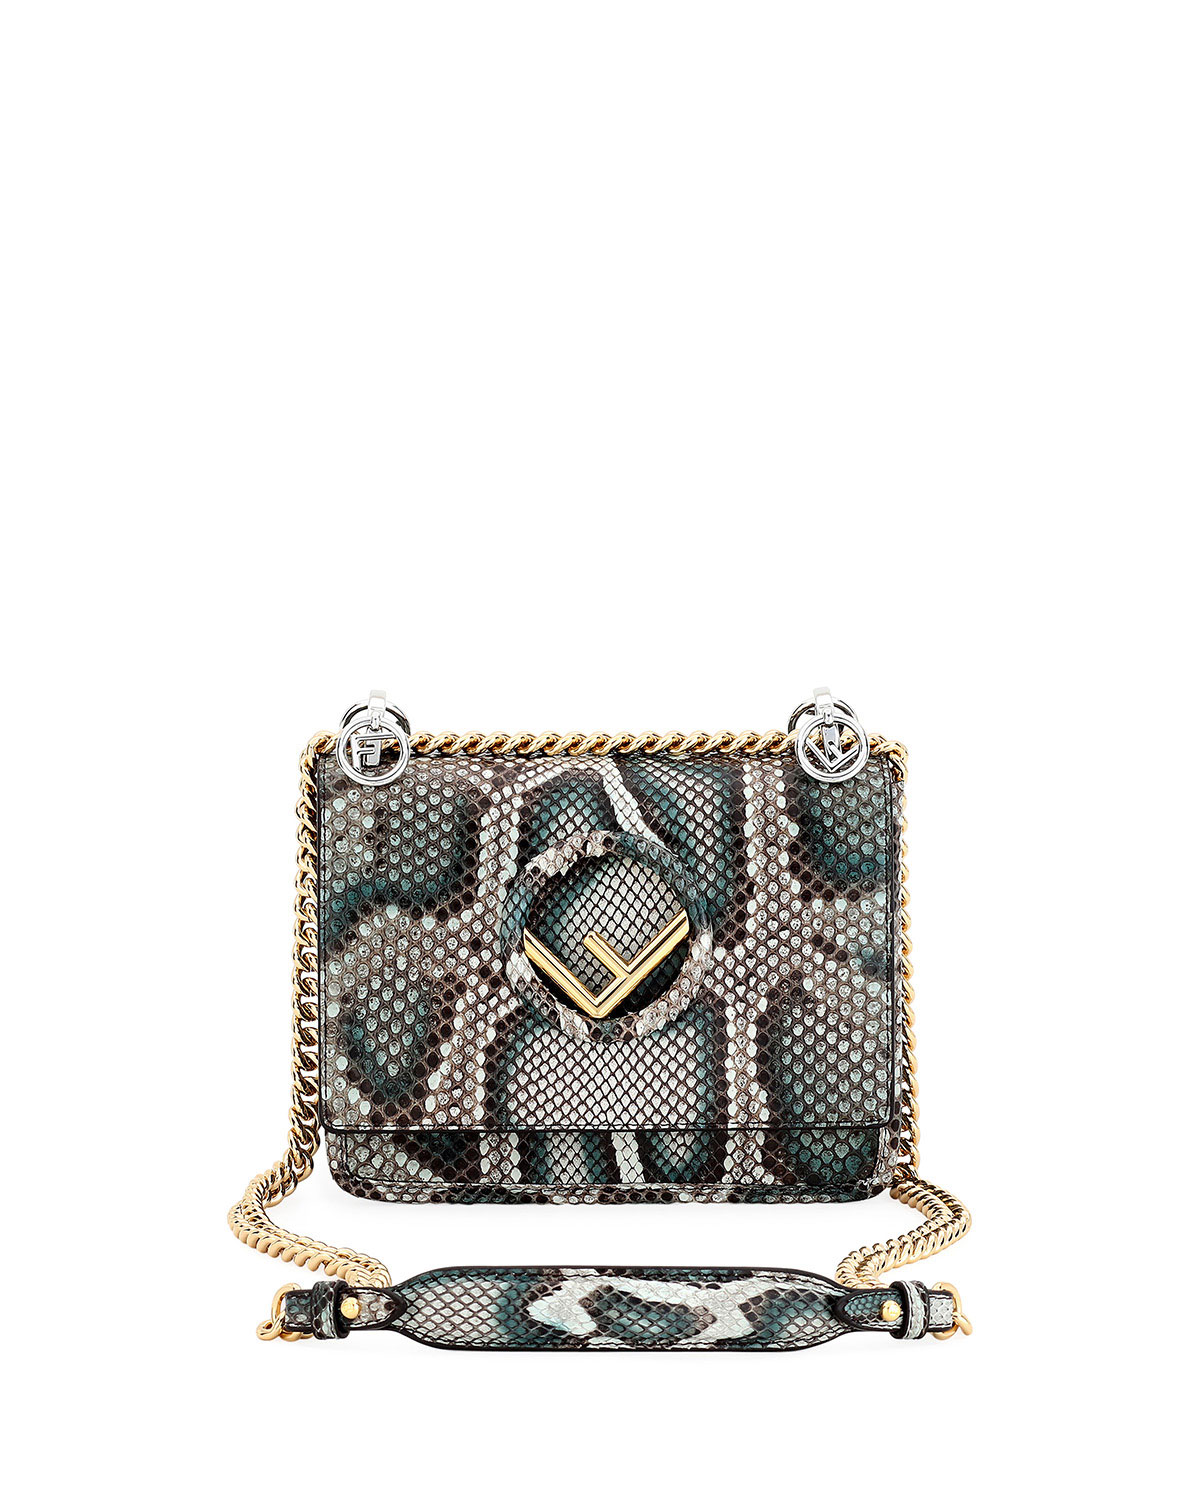 987931f93a Fendi F Logo Kan I Small Python Shoulder Bag